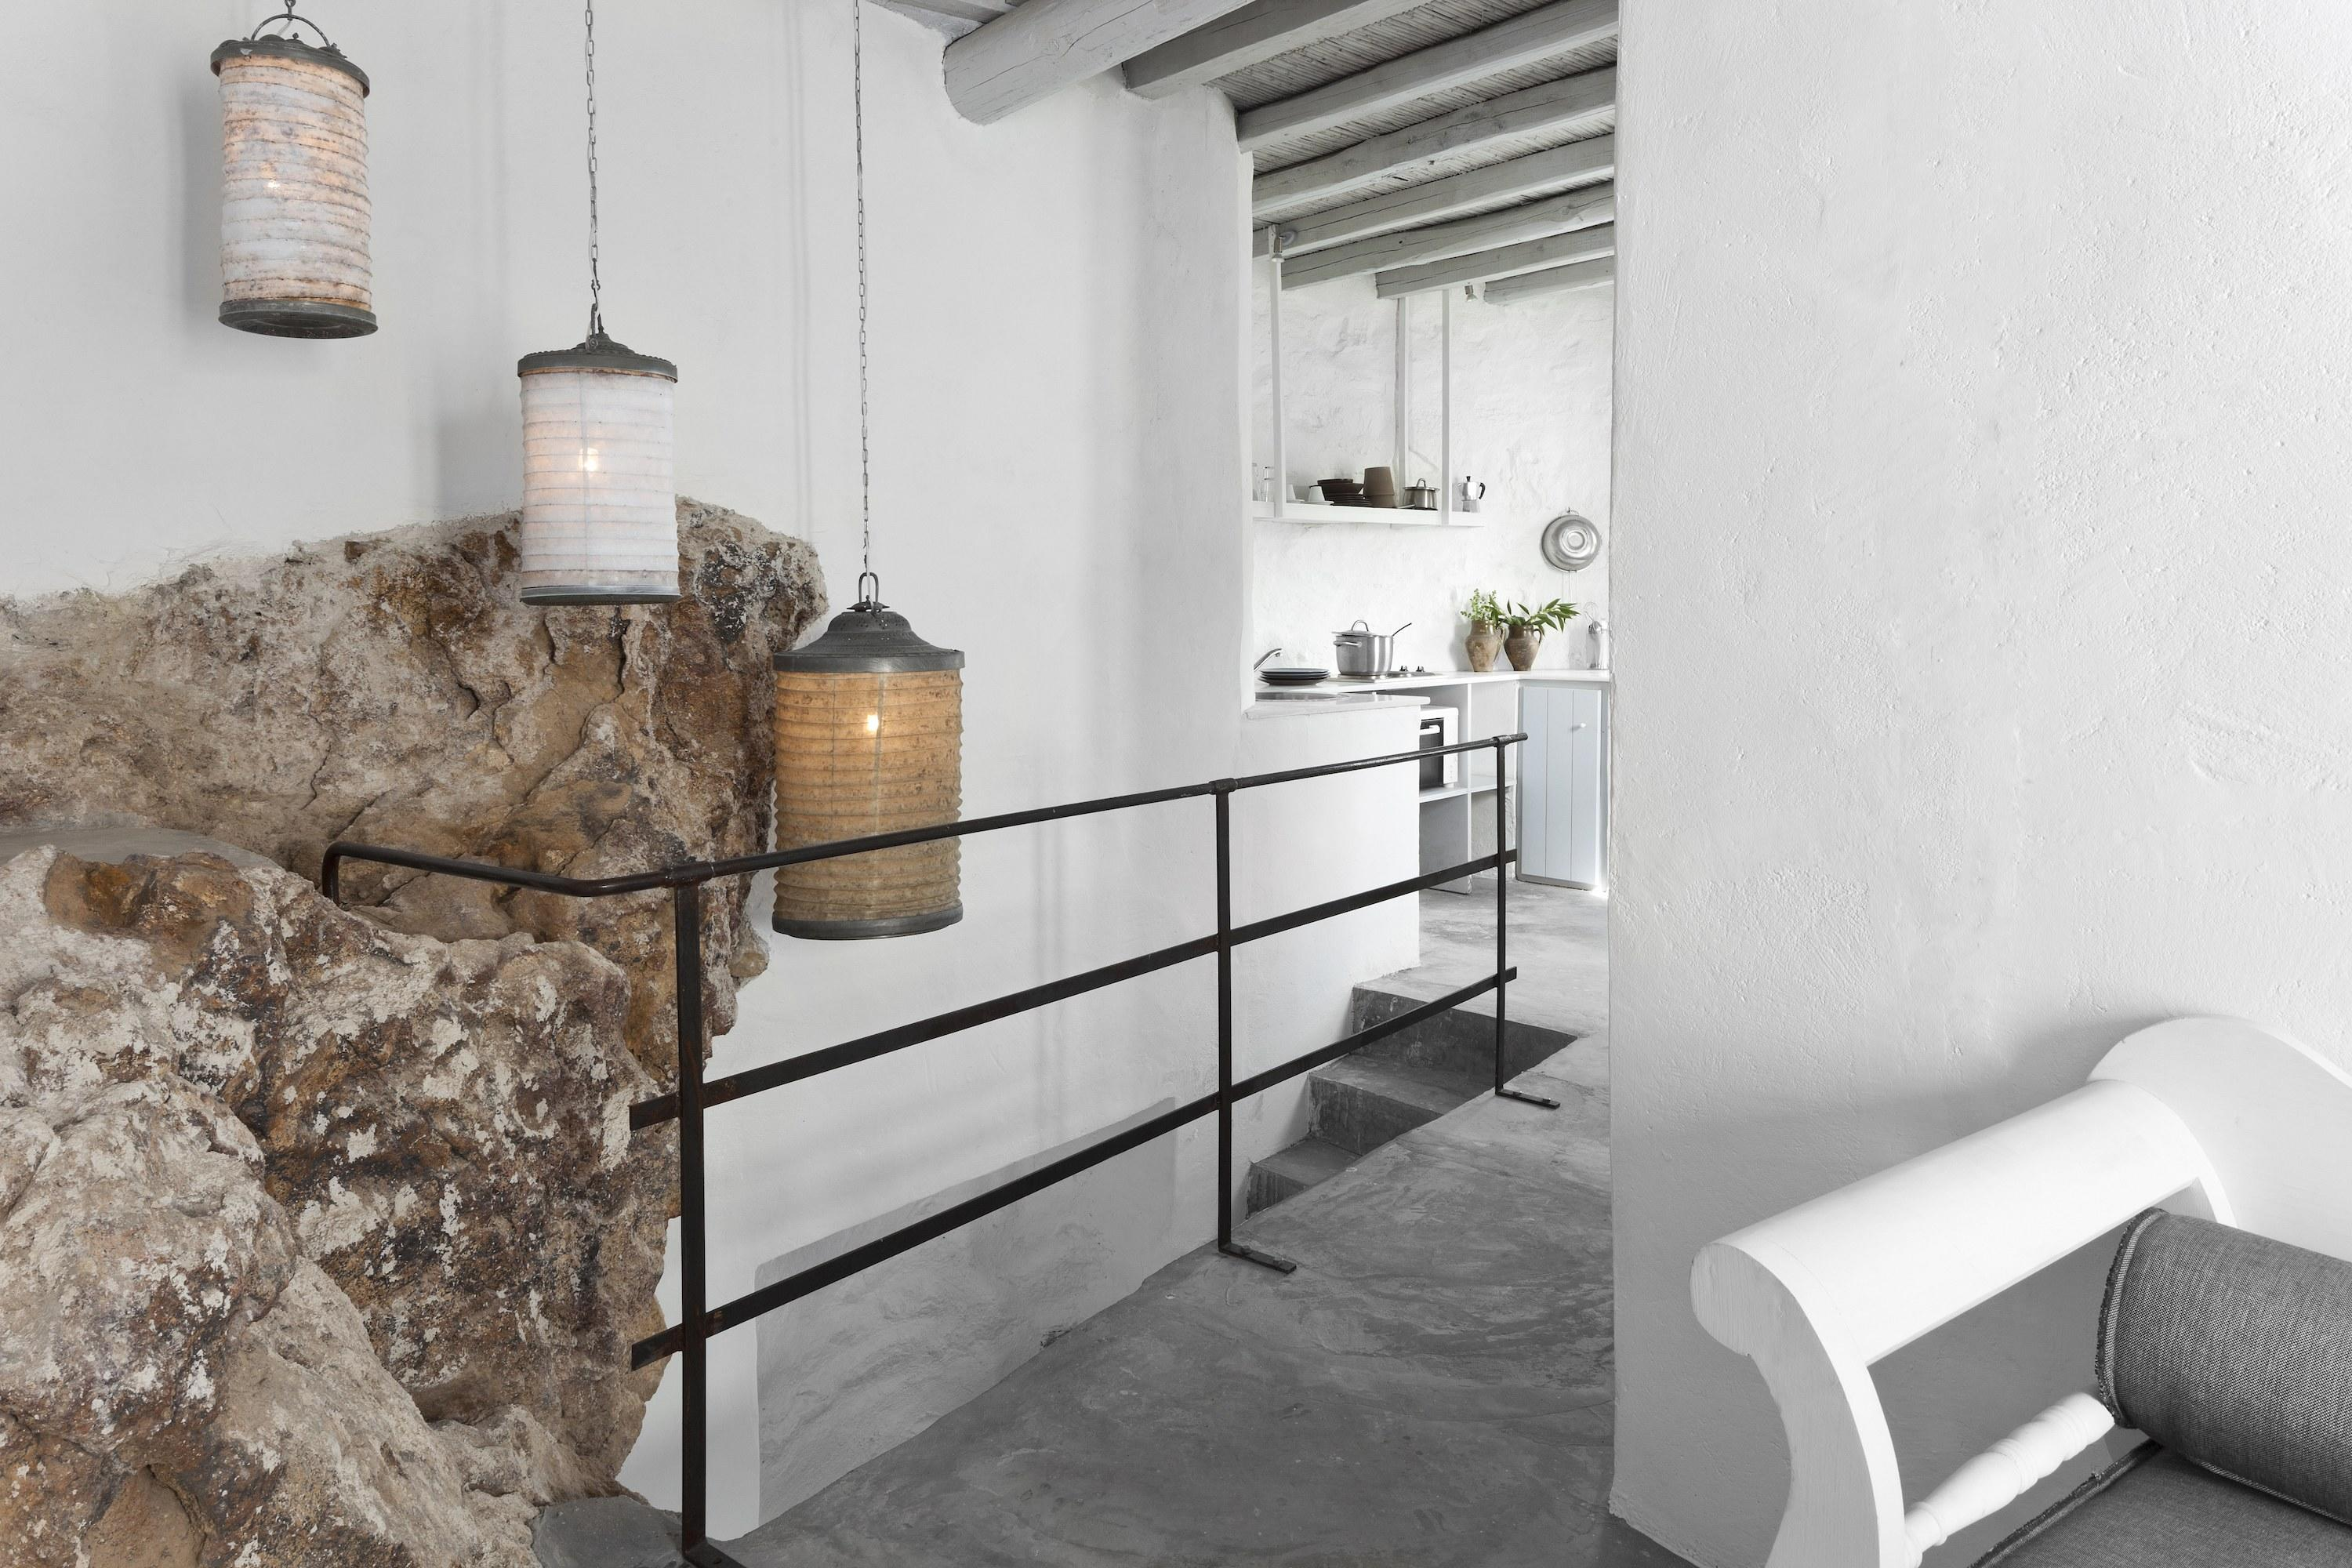 """At this <a href=""""https://www.designhotels.com/hotels/greece/serifos/coco-mat"""" rel=""""nofollow noopener"""" target=""""_blank"""" data-ylk=""""slk:Design Hotels property"""" class=""""link rapid-noclick-resp"""">Design Hotels property</a>, Greek architect George Zafiriou revamped former miners' quarters into two-story apartments with sea views. Responsible for the interiors, designers Ioanna Founti and Zili Karahaliou drafted open spaces in earth tones and filled the rooms with furniture made of natural fibers like coconut and chestnut. The beds are Coco-Mat—which is unsurprising, given that the hotel is an extension of the brand, which was founded in 1989 in Greece and makes all of its mattresses in the country from materials including seaweed and cactus fibers."""